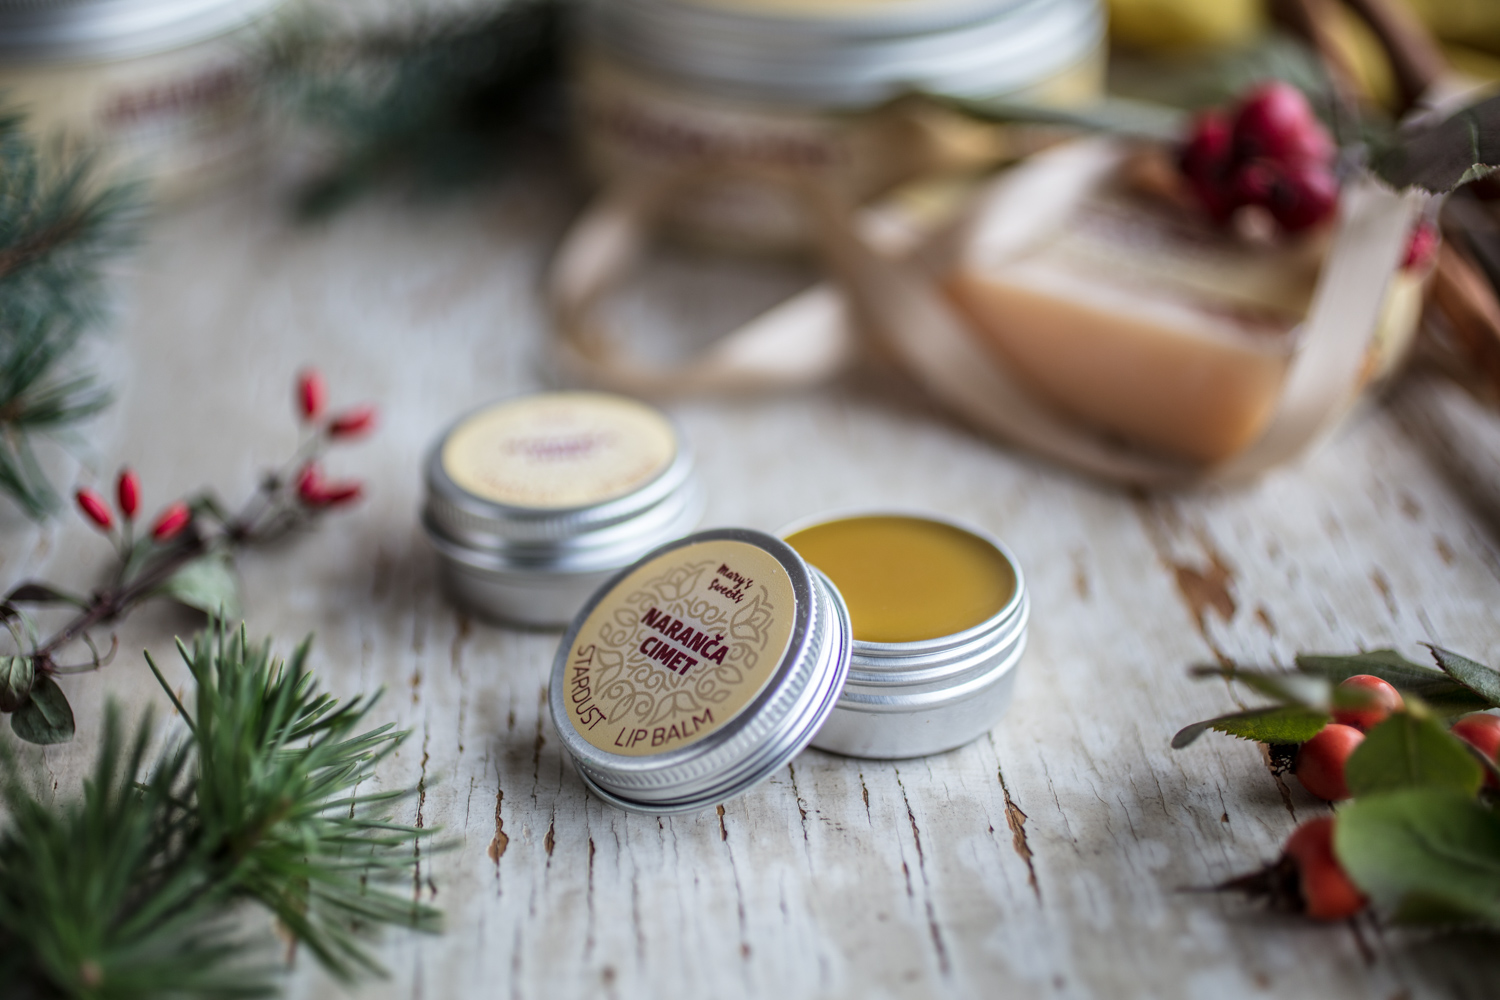 Orange & Cinnamon Stardust Lip Balm